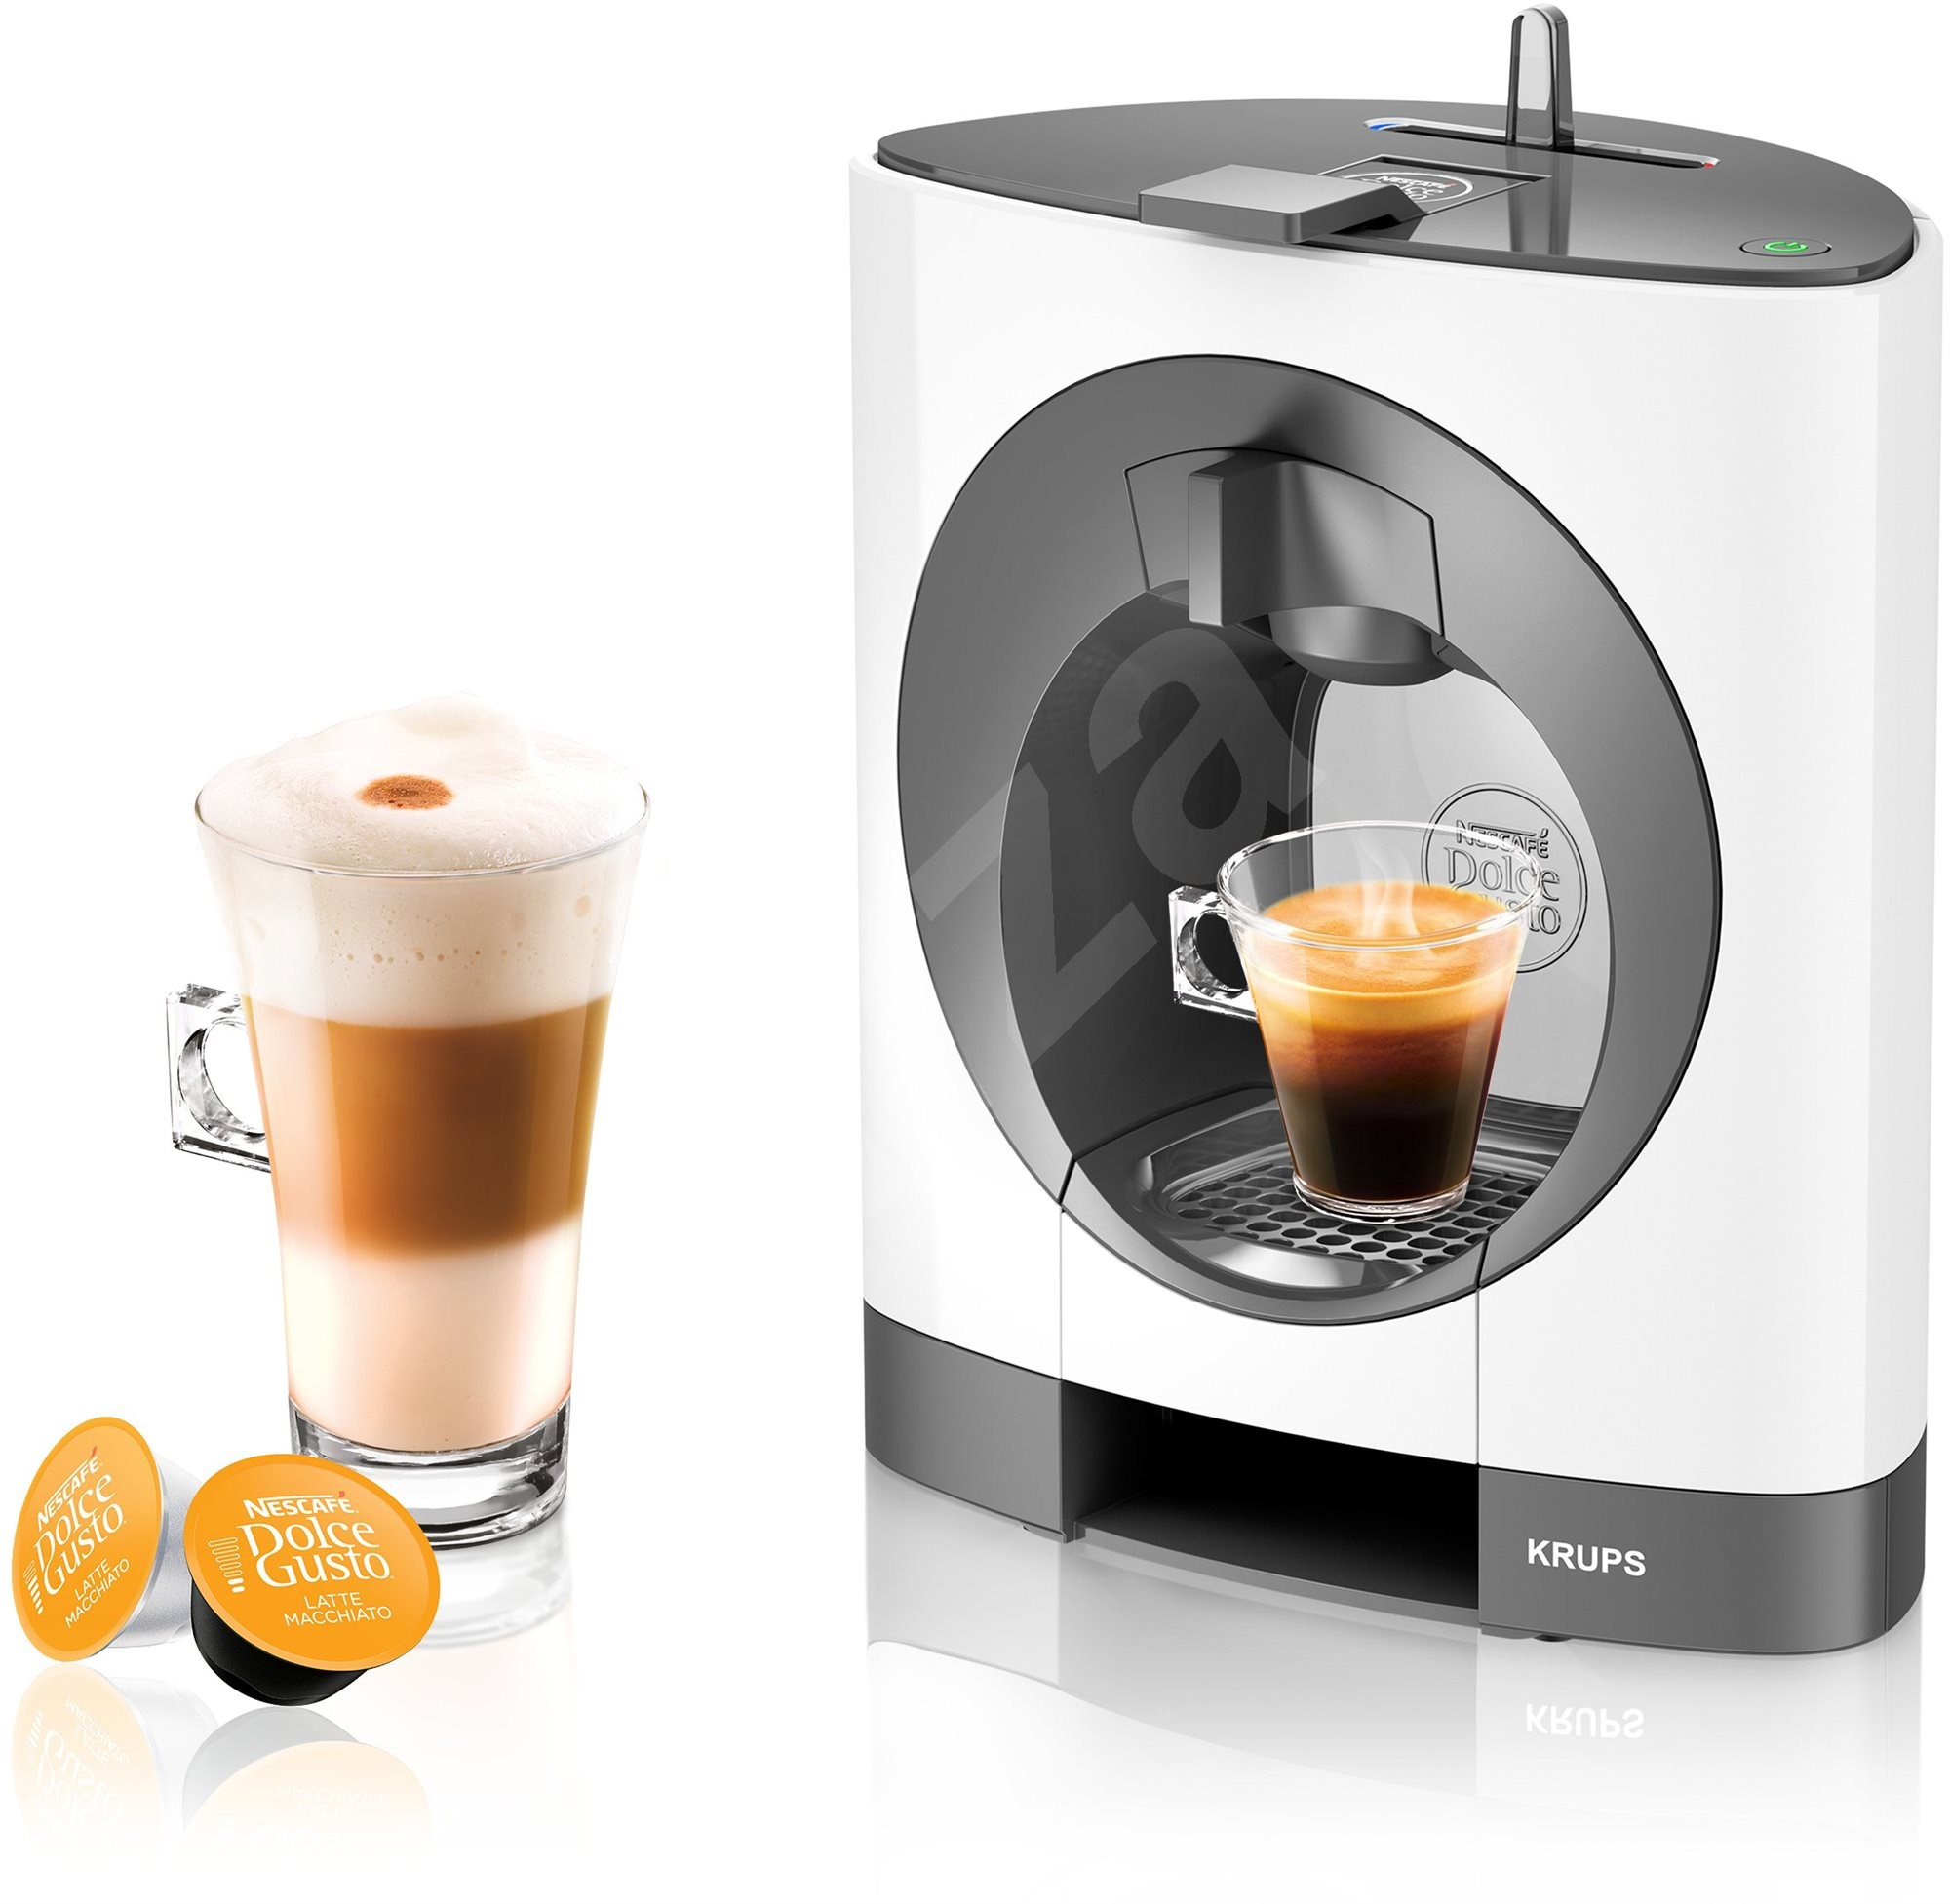 krups kp110131 nescaf dolce gusto oblo capsule coffee. Black Bedroom Furniture Sets. Home Design Ideas